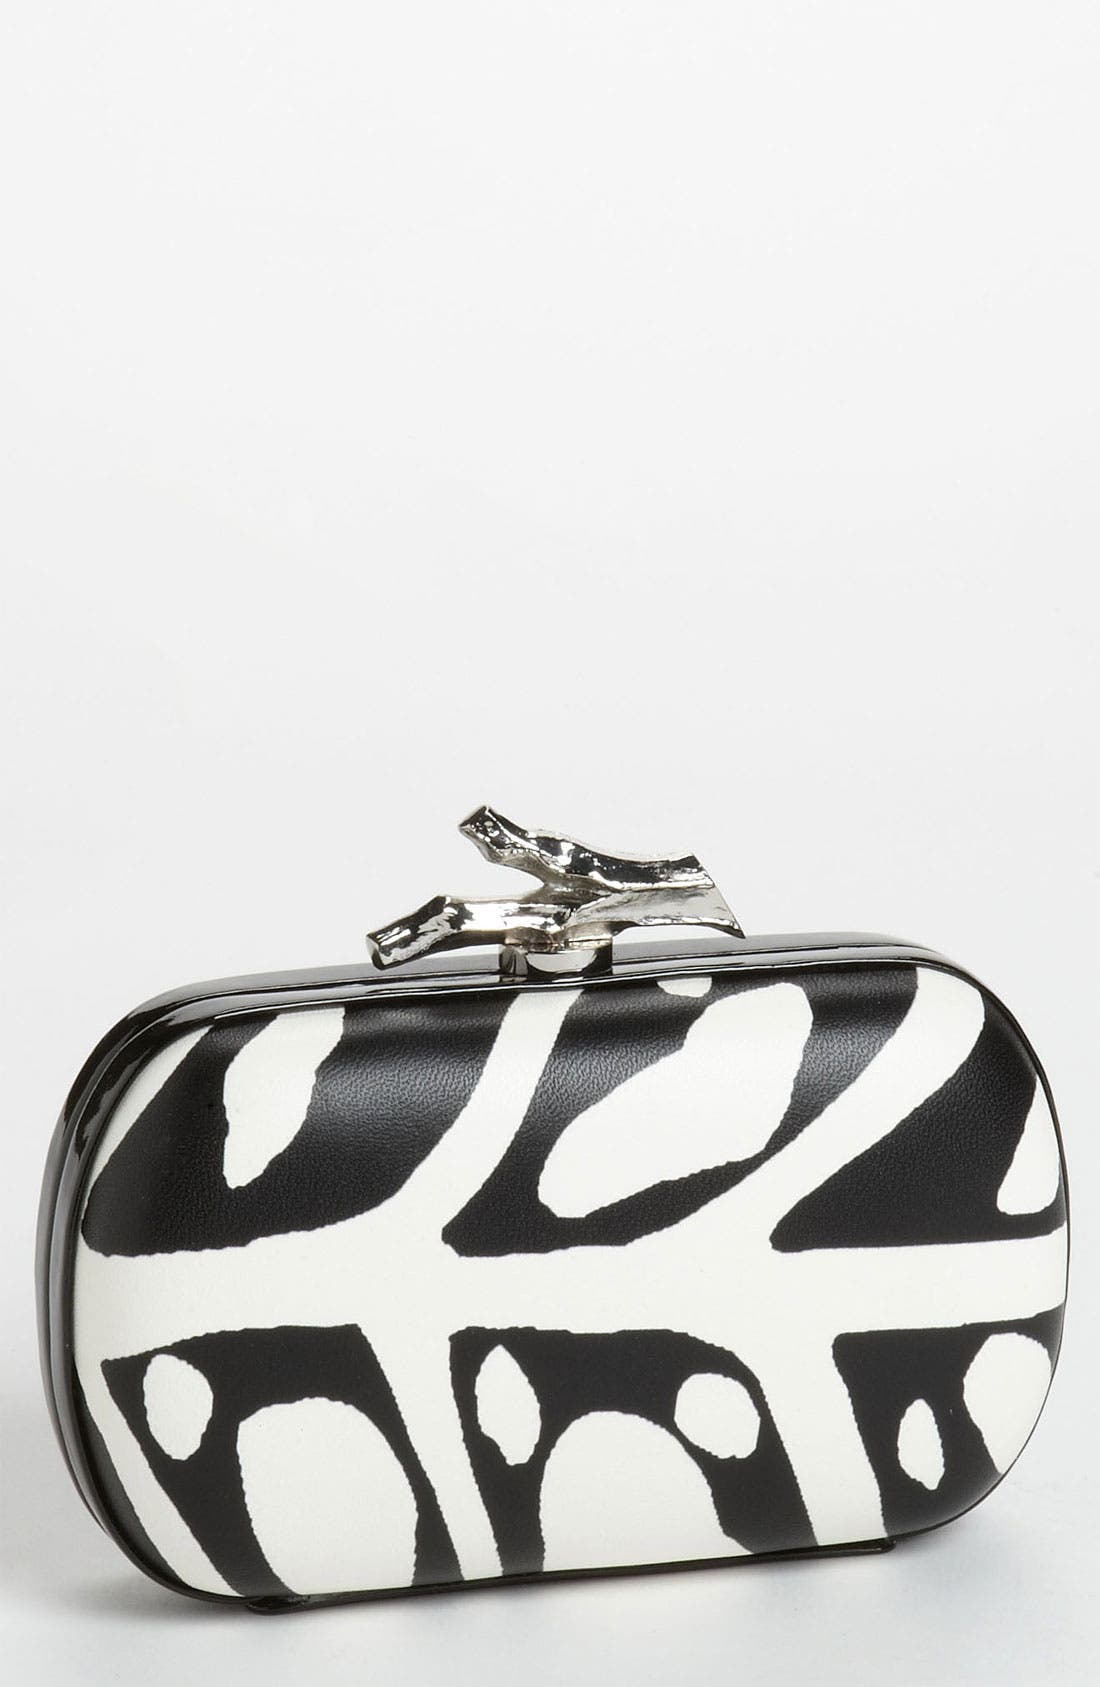 Main Image - Diane von Furstenberg 'Lytton' Printed Leather Clutch